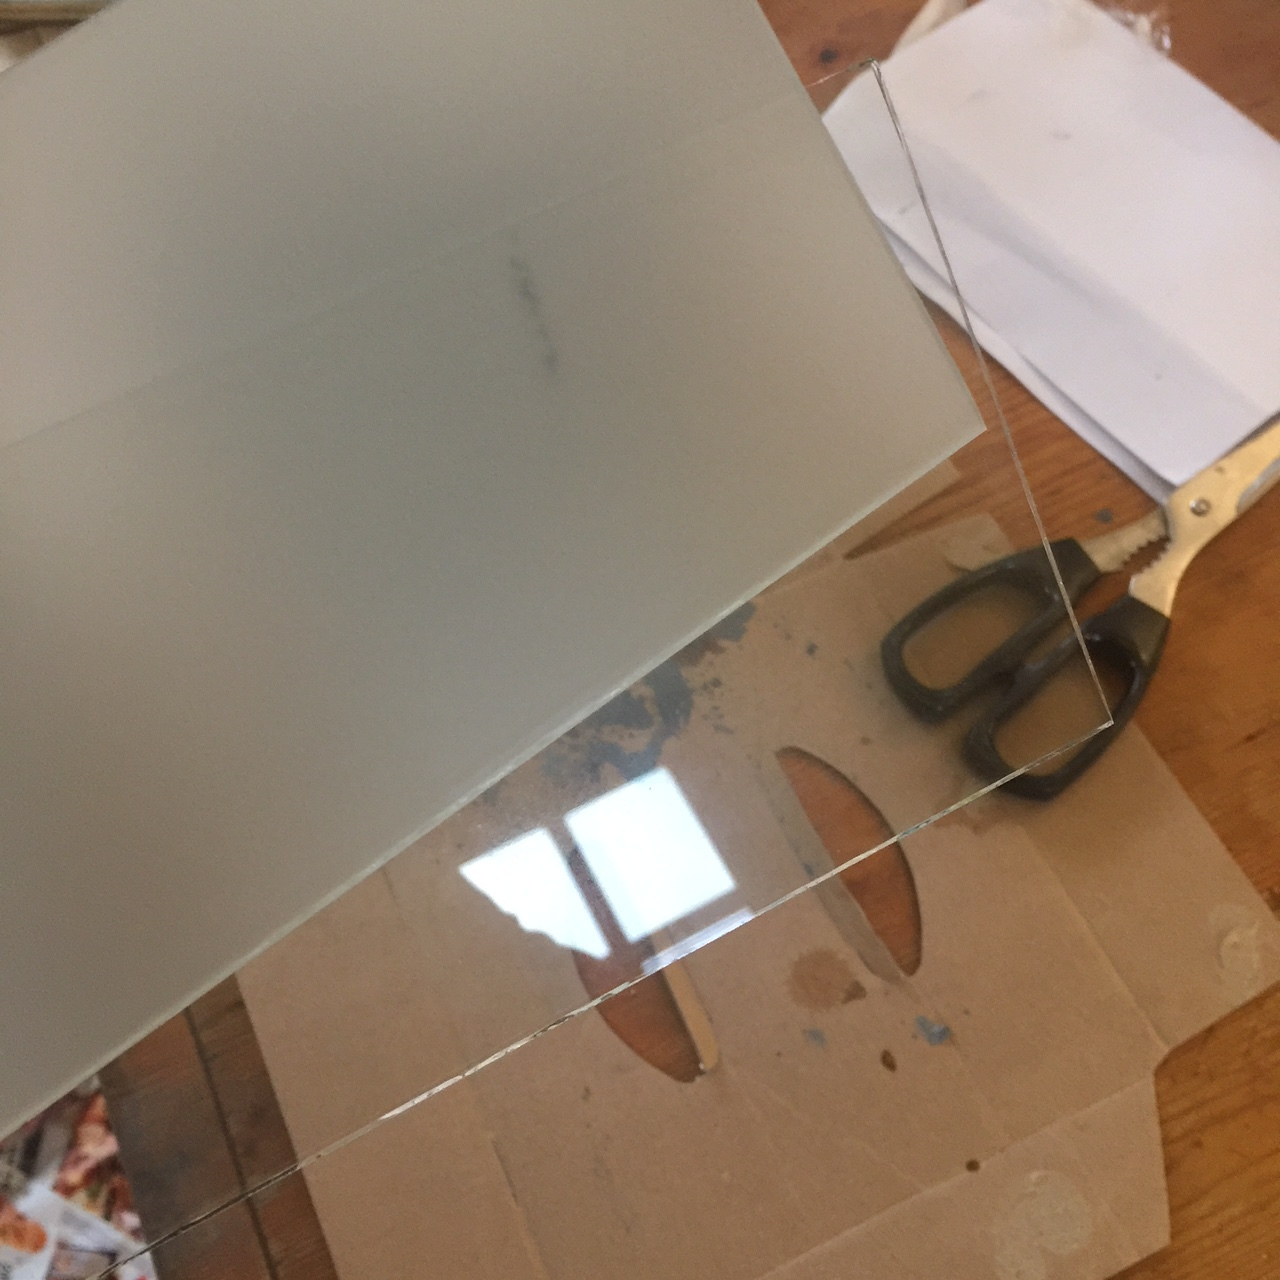 Ground glass before and after